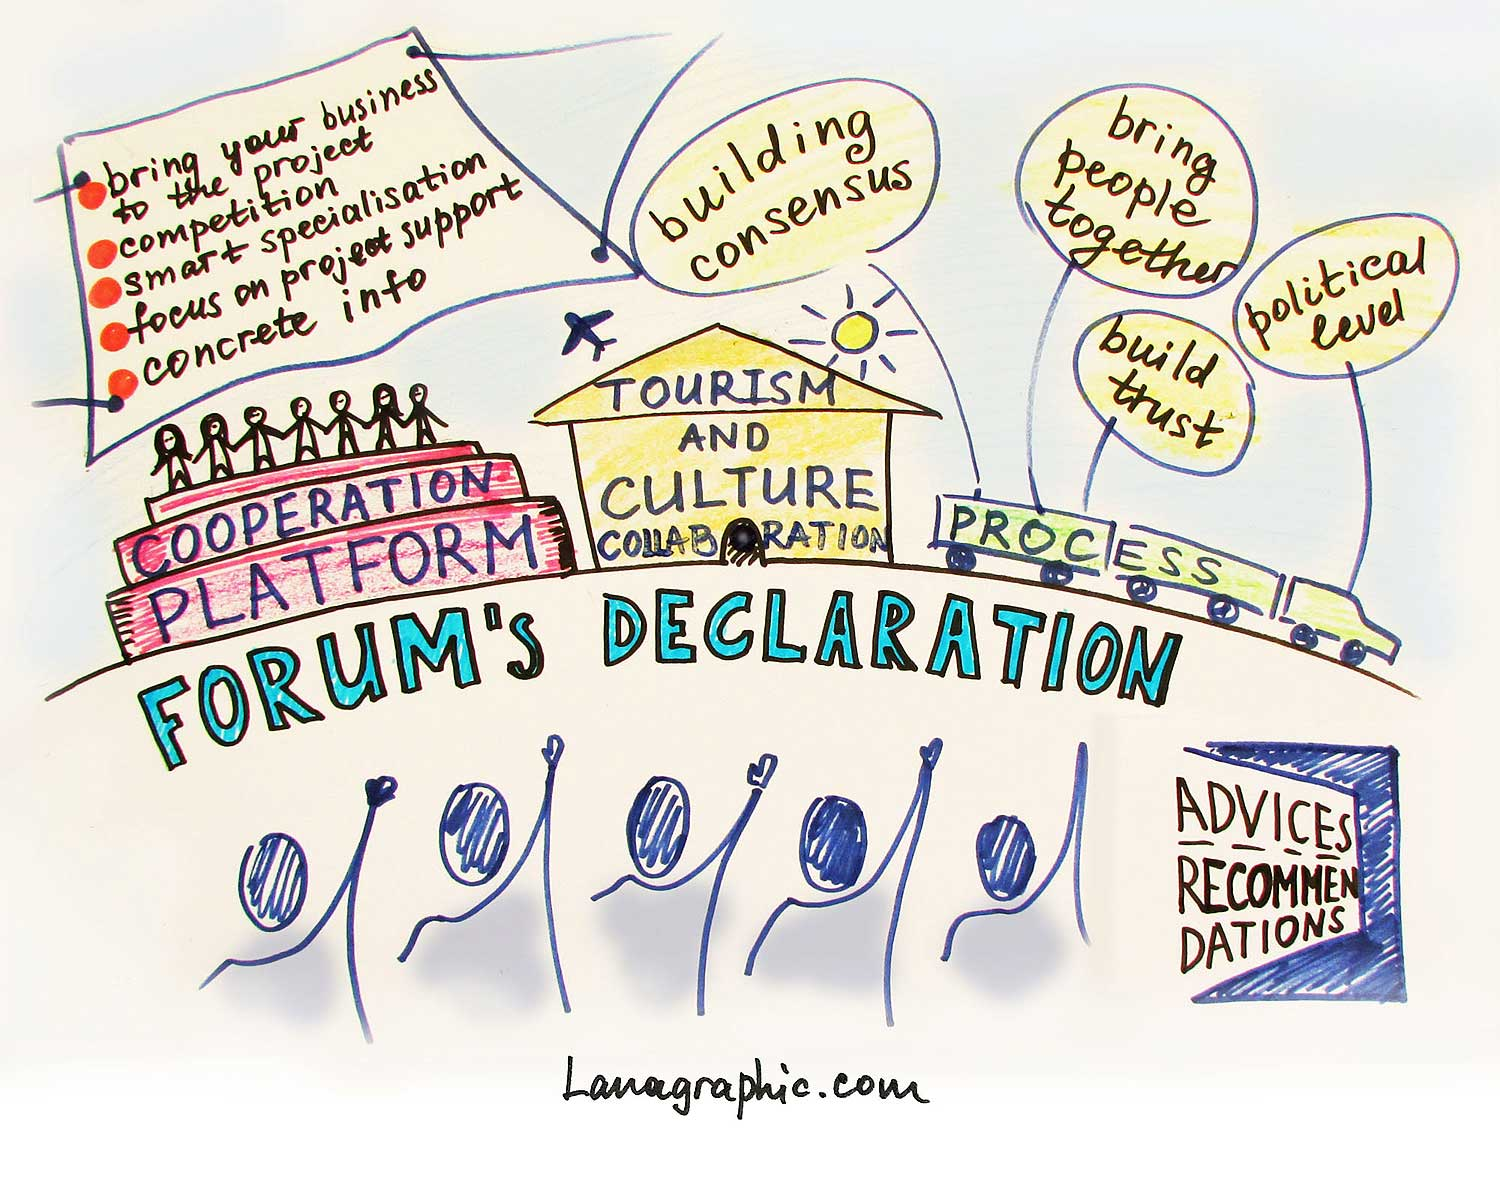 tourism-forum-declaration-by-Lanagraphic